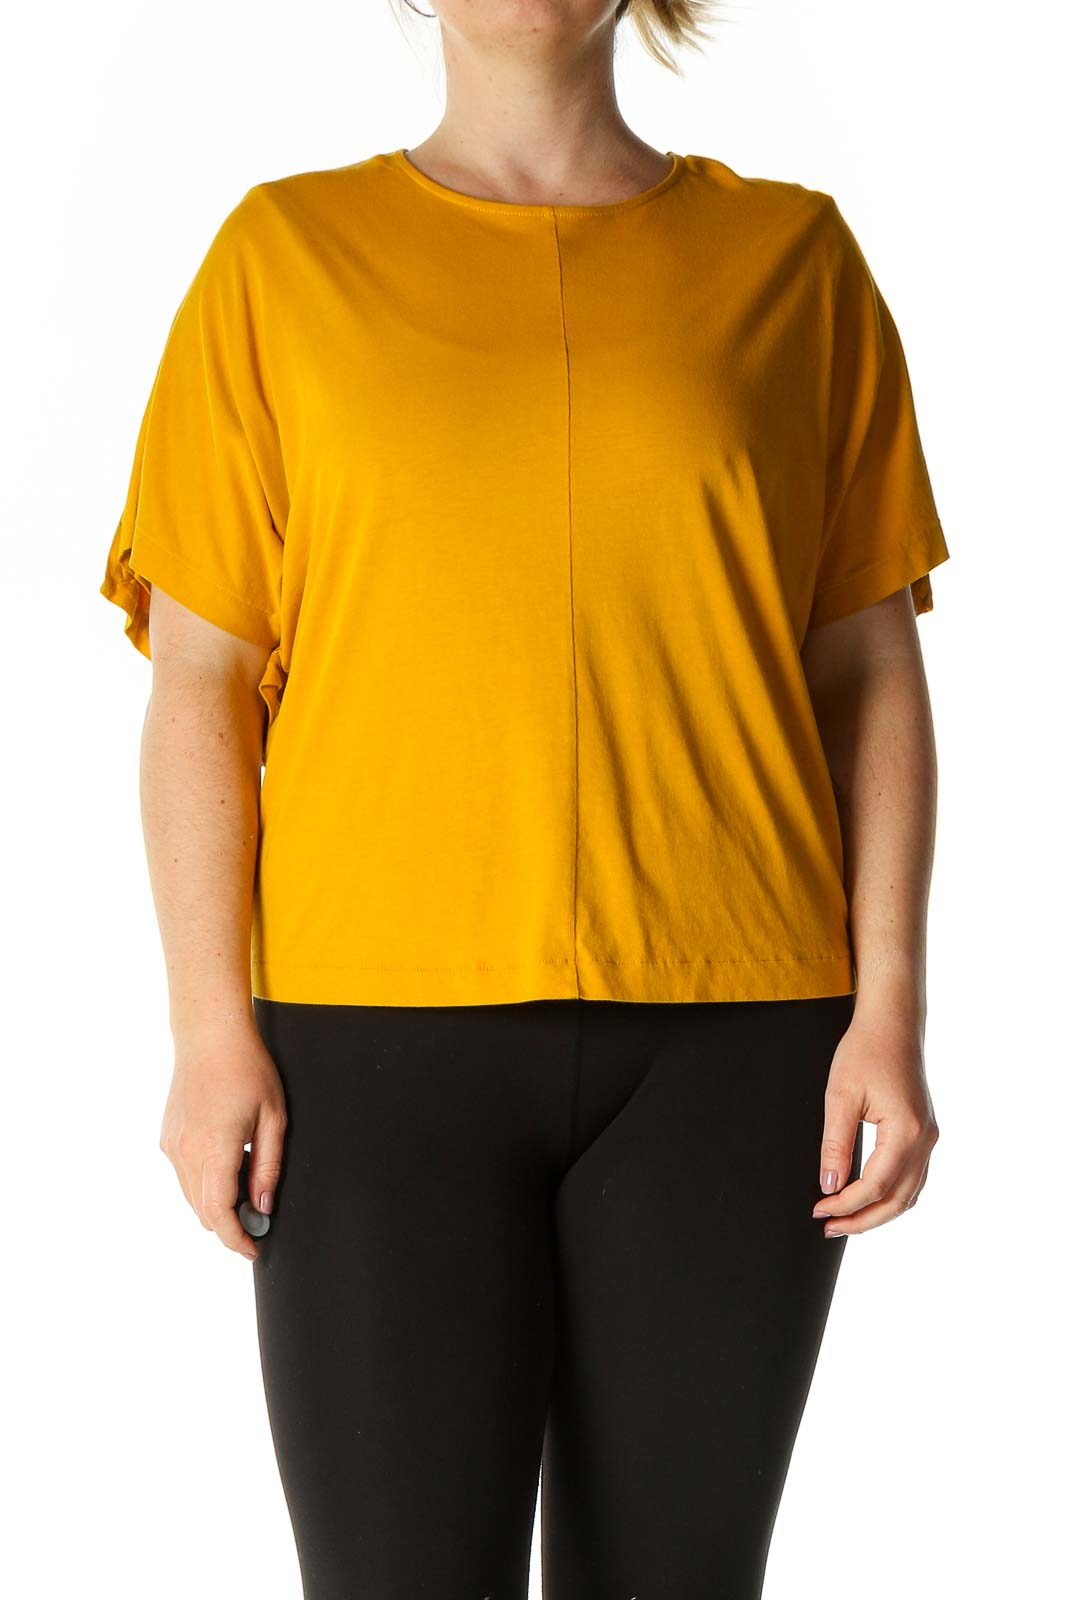 Yellow Solid Casual Blouse Front